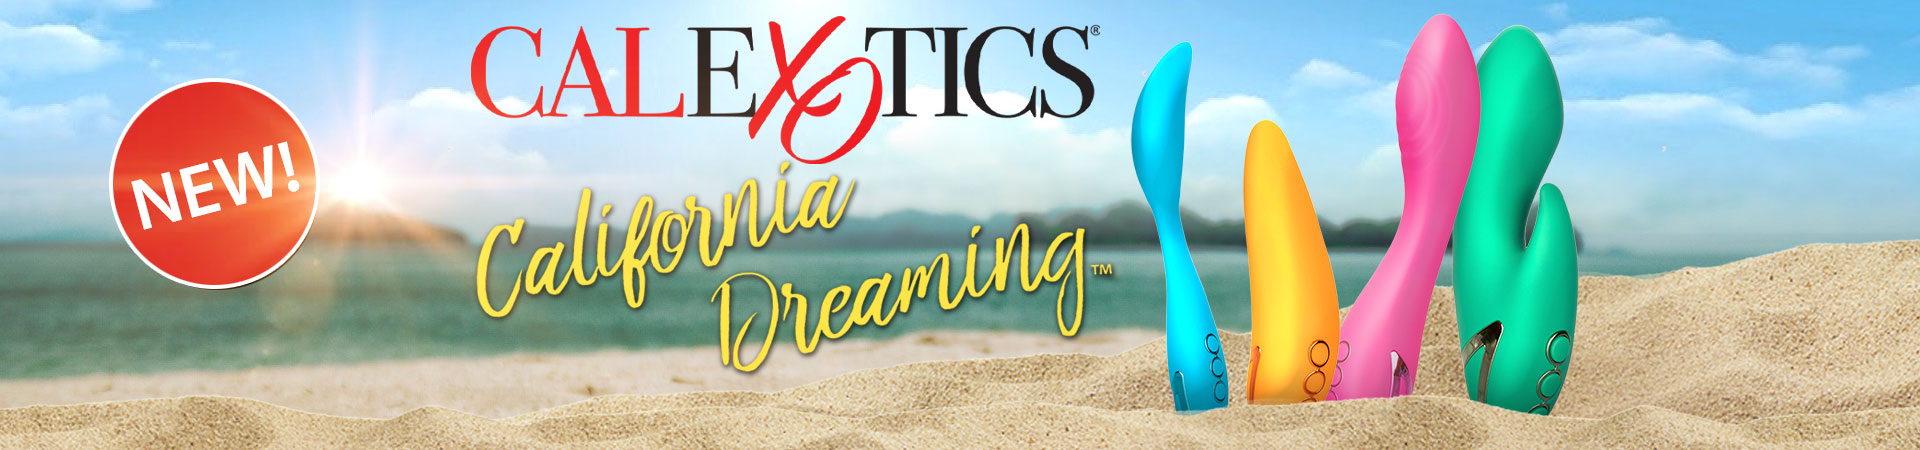 New at SheVibe! More Vibe Additions To The California Dreaming Collection From CalExotics!